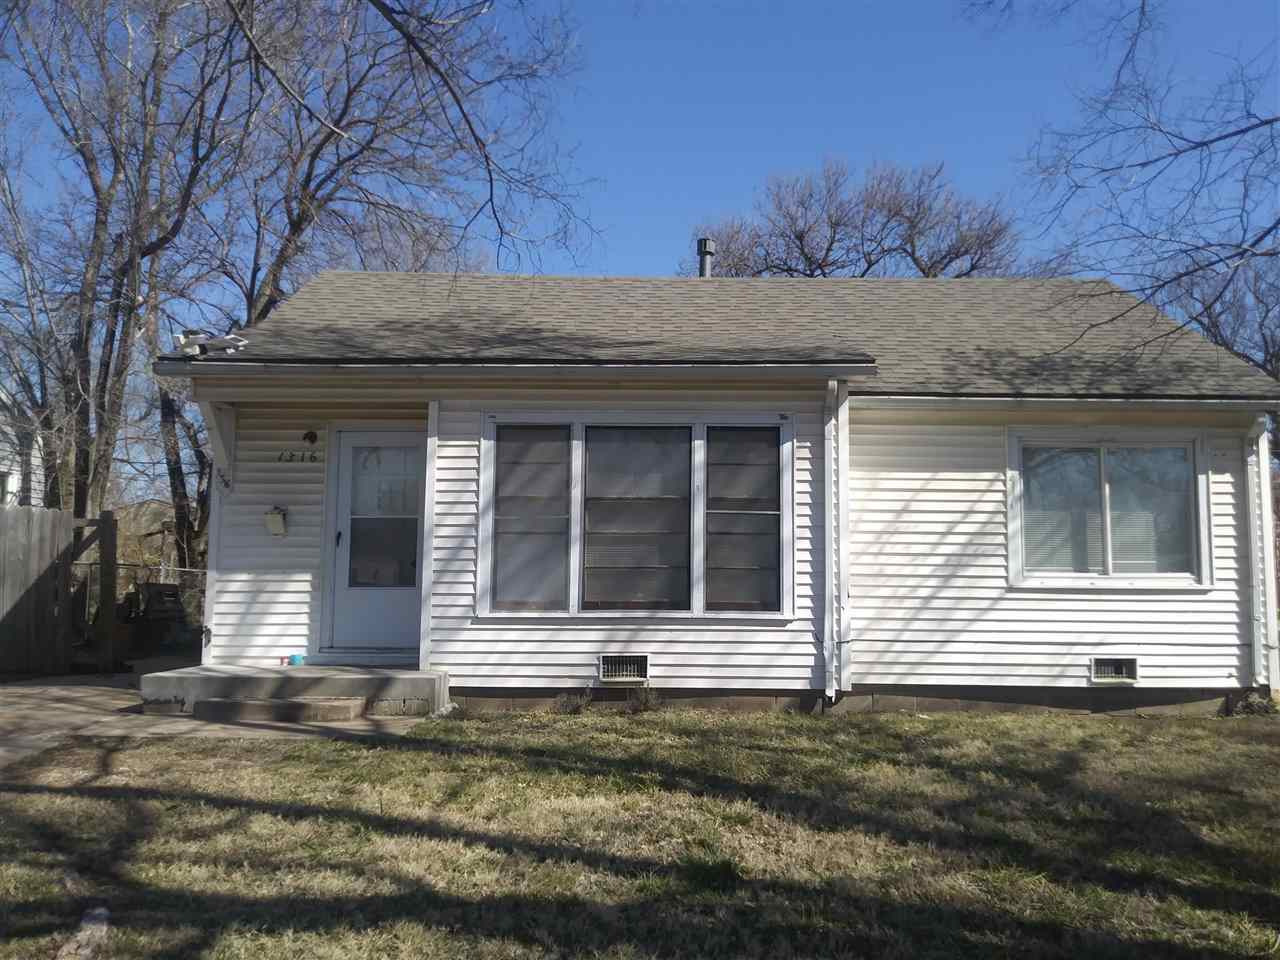 Cute 2 bedroom great for starter home, down sizing or even Investment. Wood floors in bedrooms and l